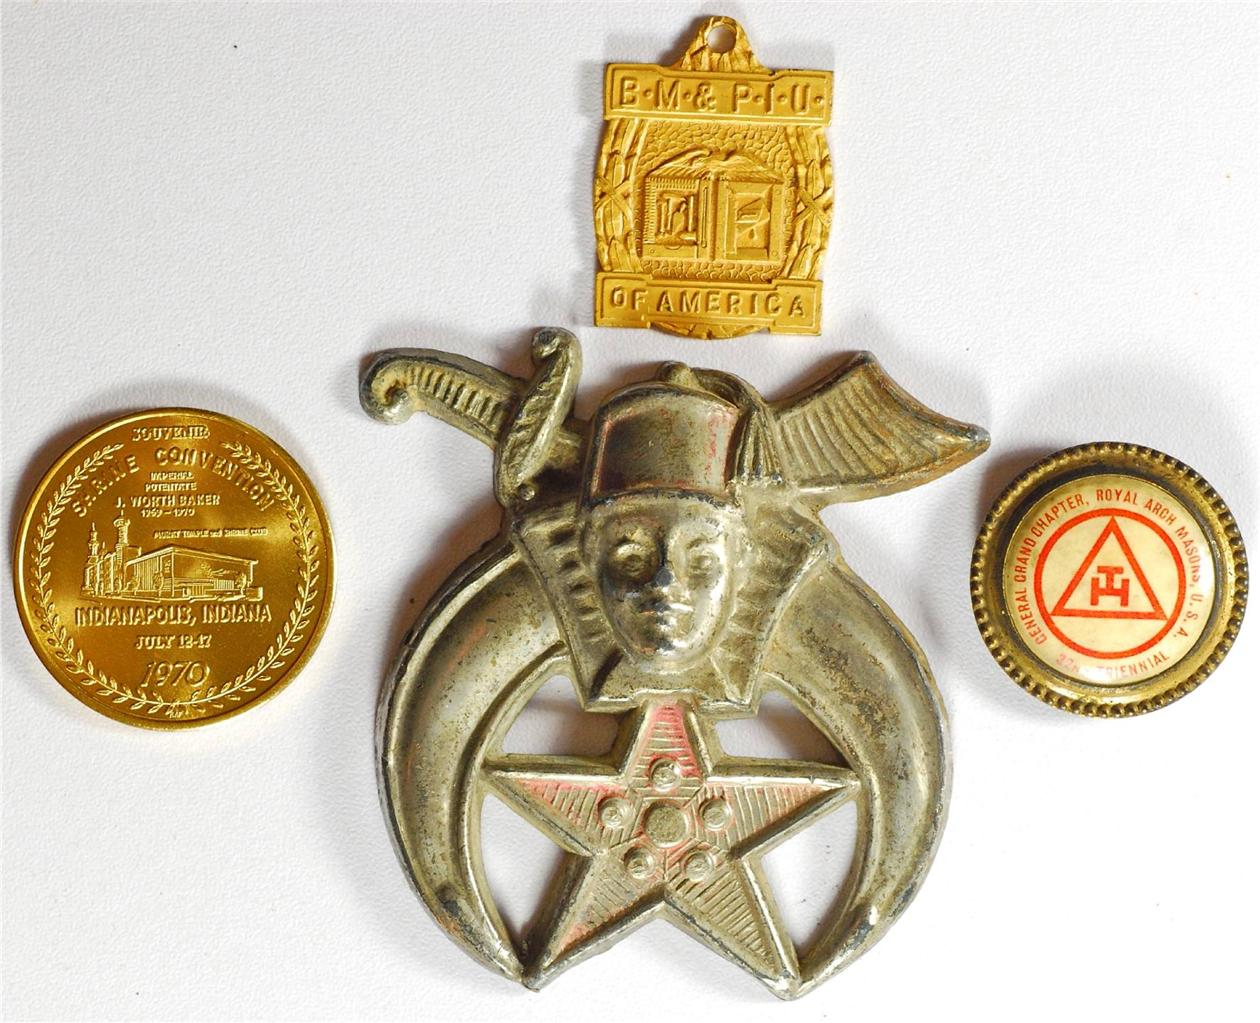 Shriners Pins Images - Reverse Search